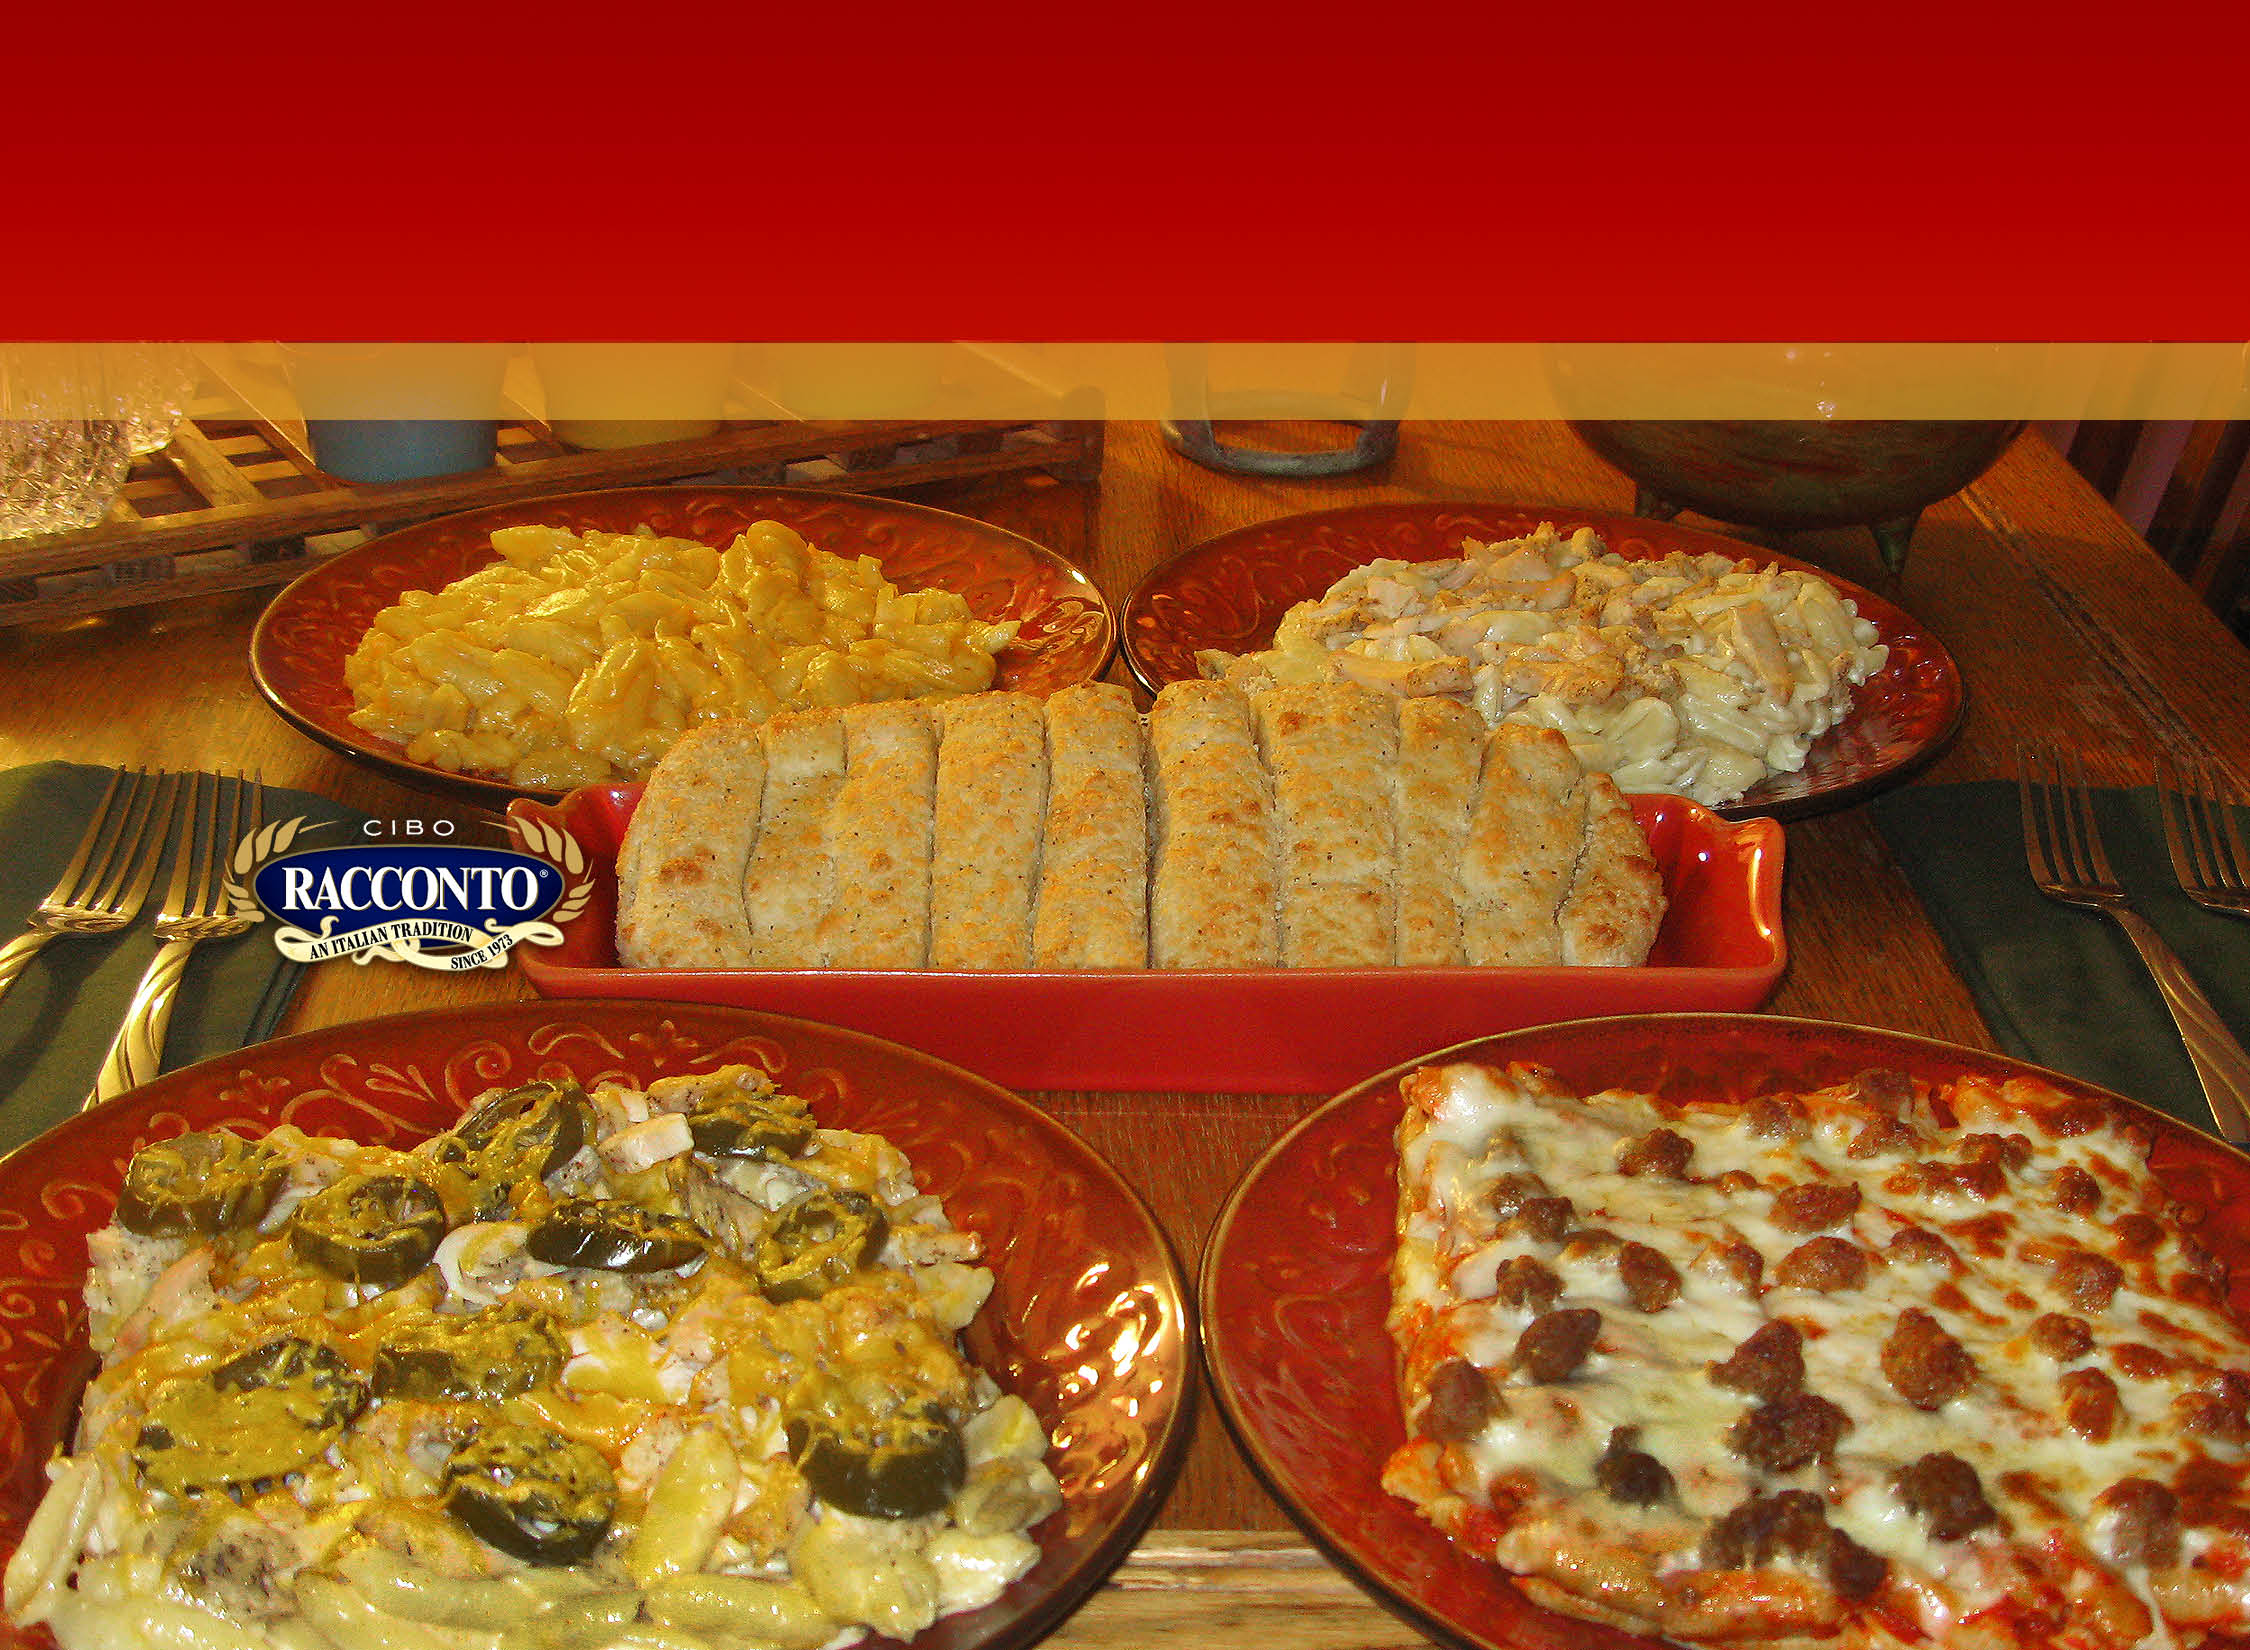 Our Des Moines, IA restaurant offers Italian menu items like pizza and chicken alfredo